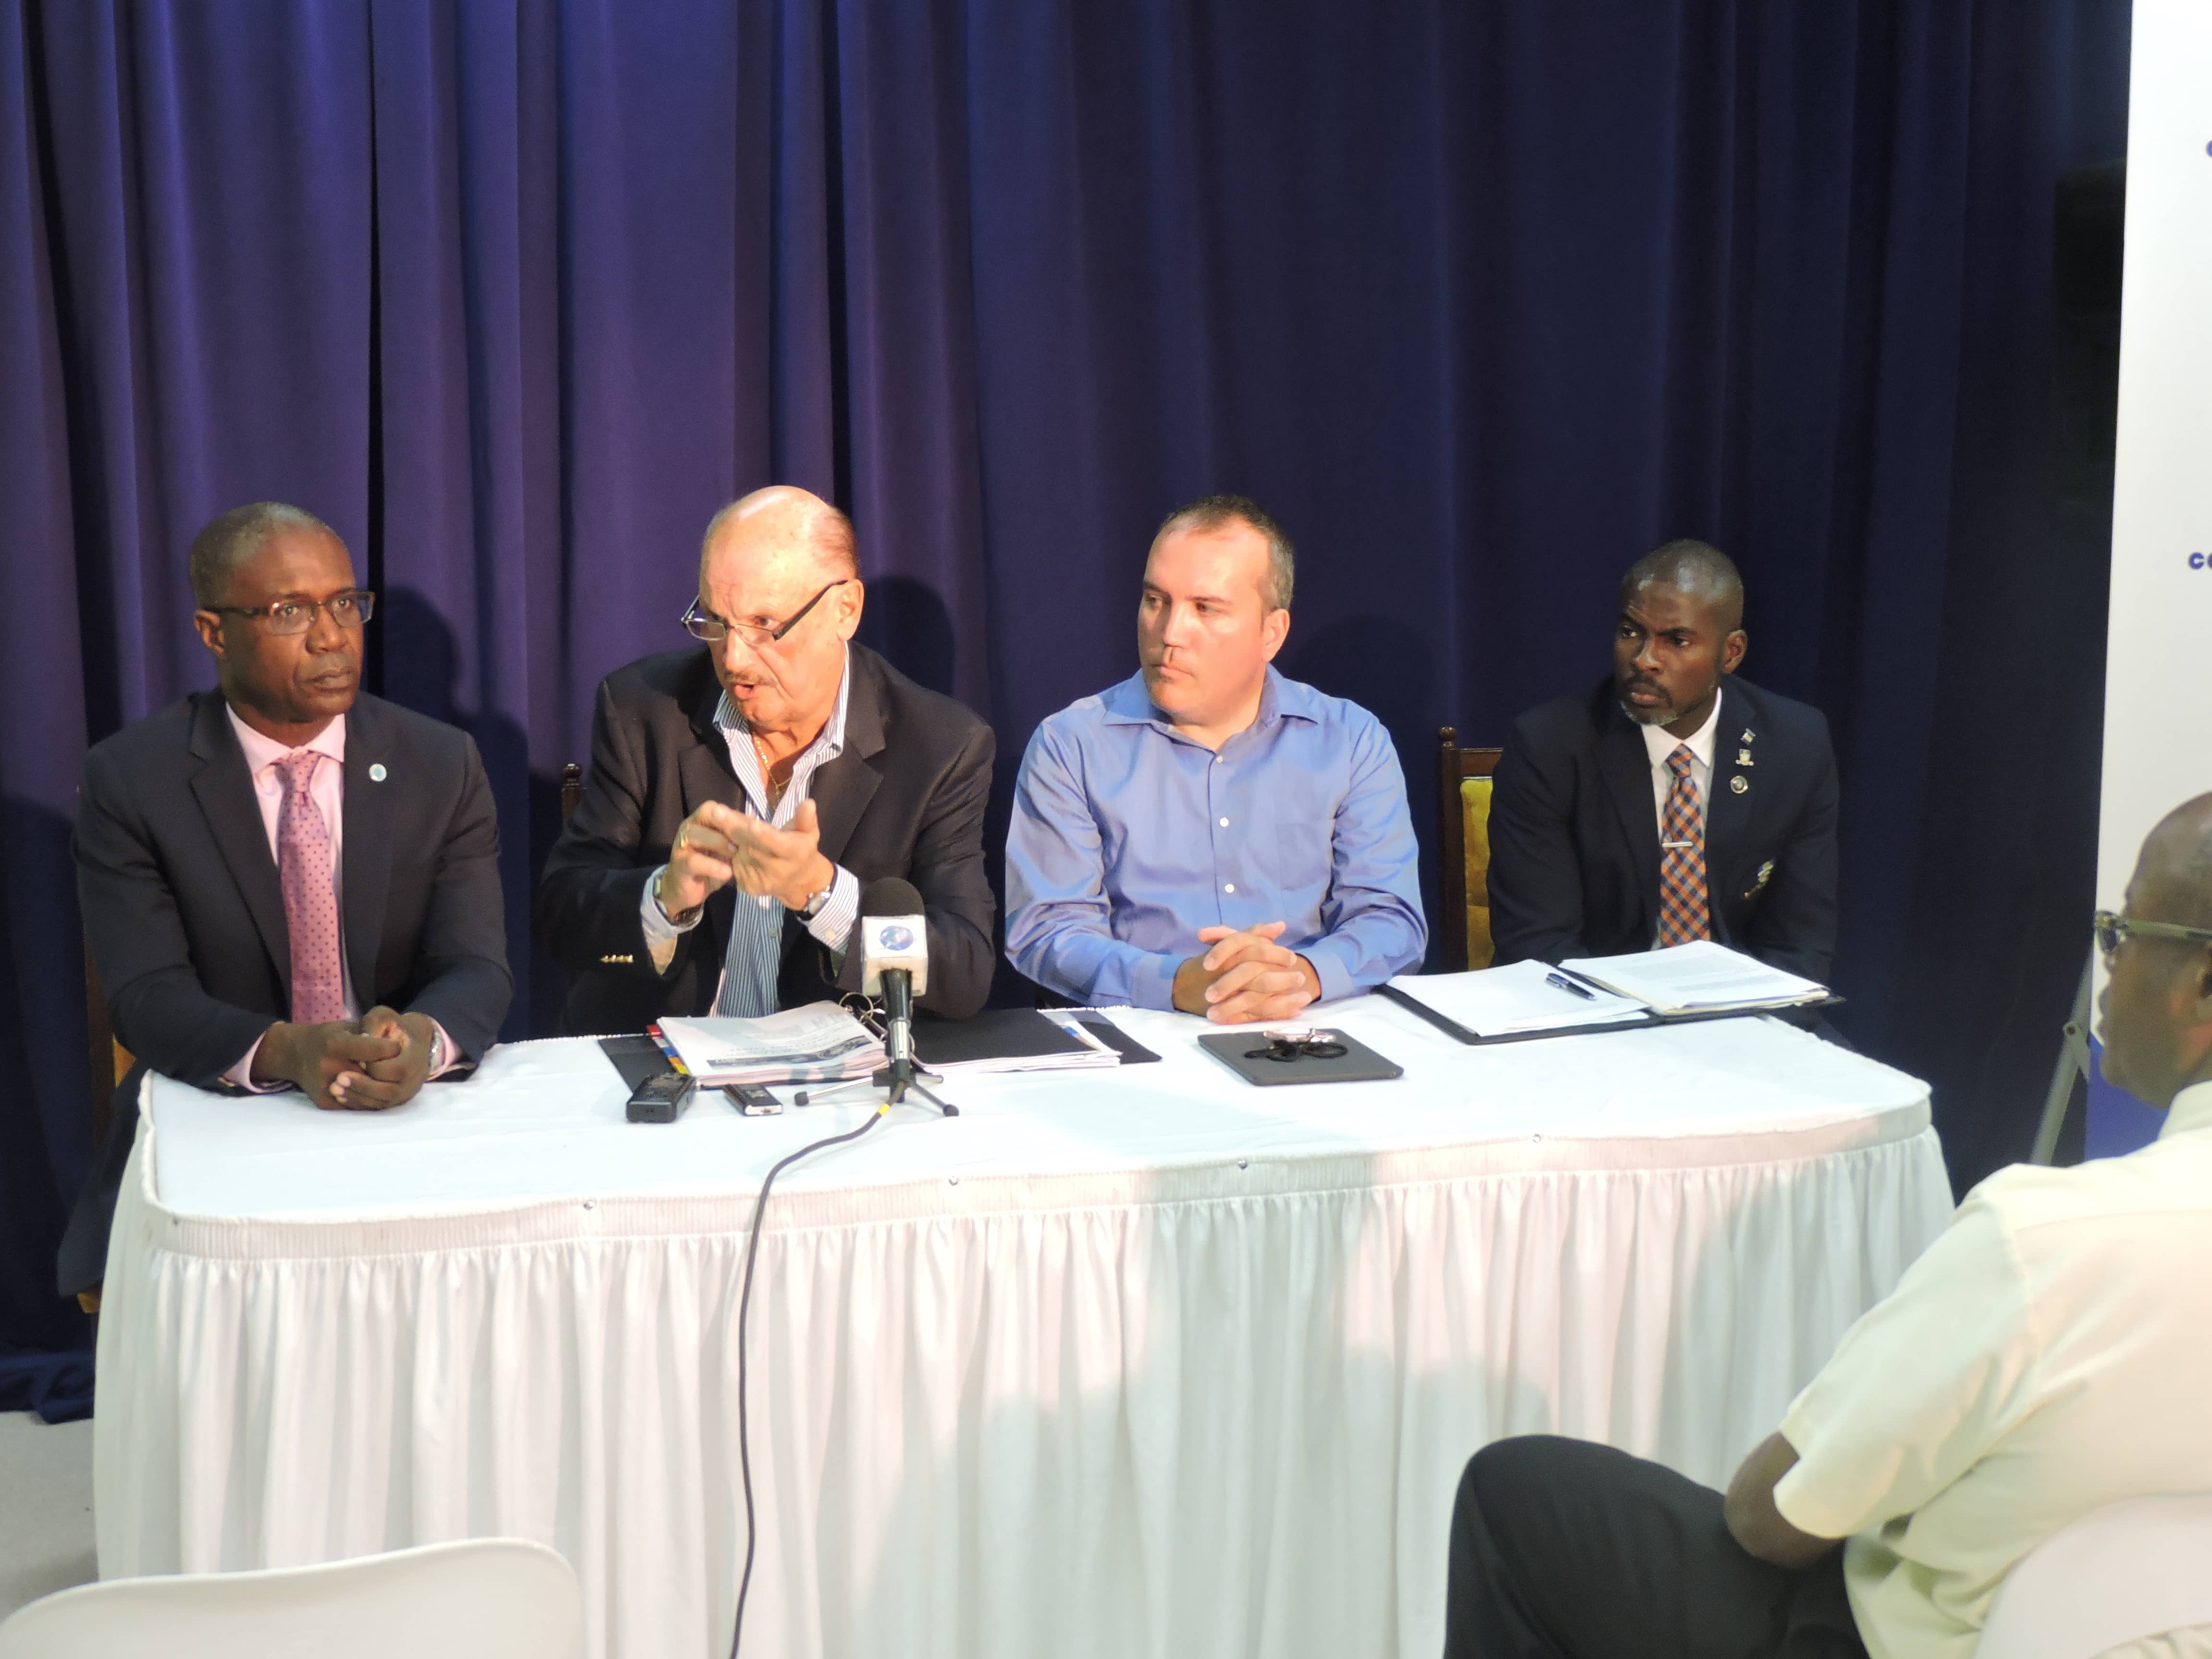 Caribbean Shipping Association's 47th Annual General Meeting